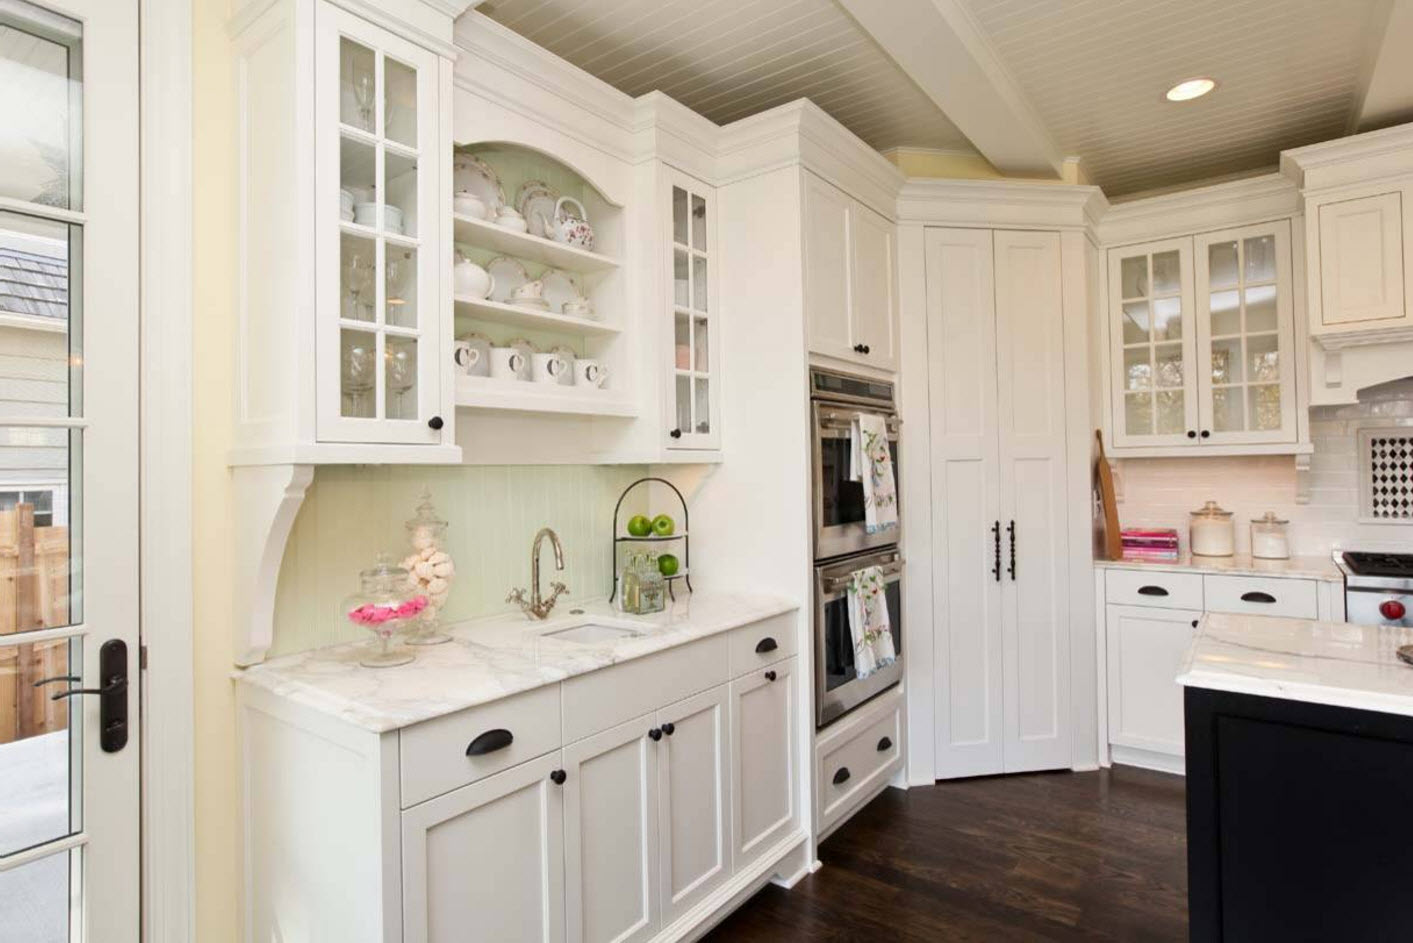 French Provence touch in the modern milky white kitchen with two ovens